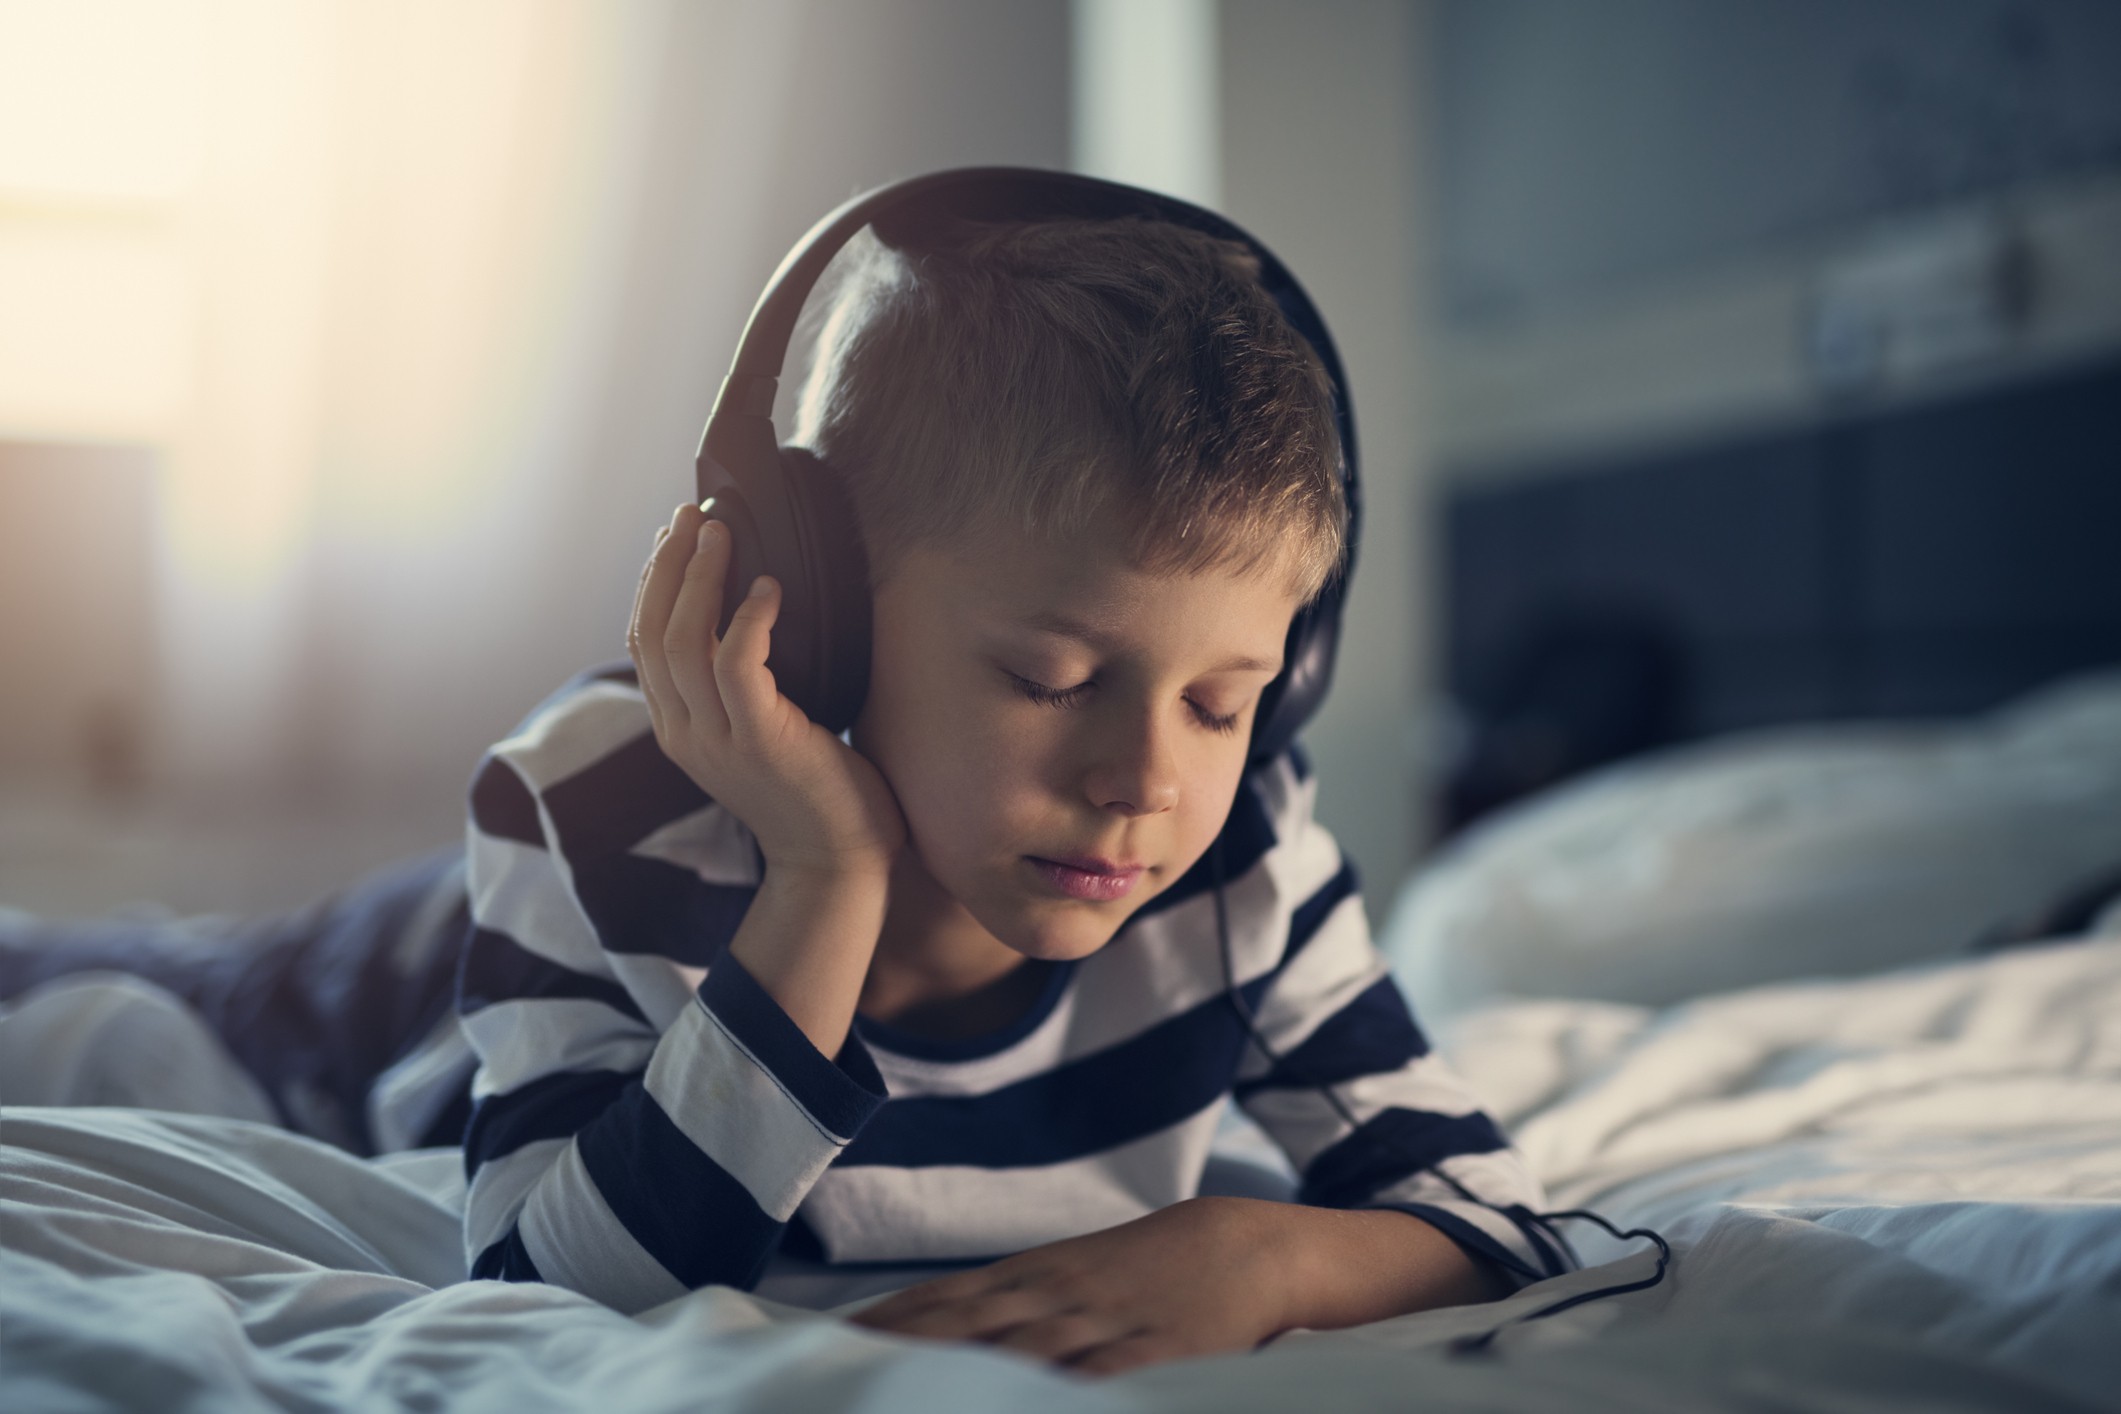 Boy listening to podcasts in bed